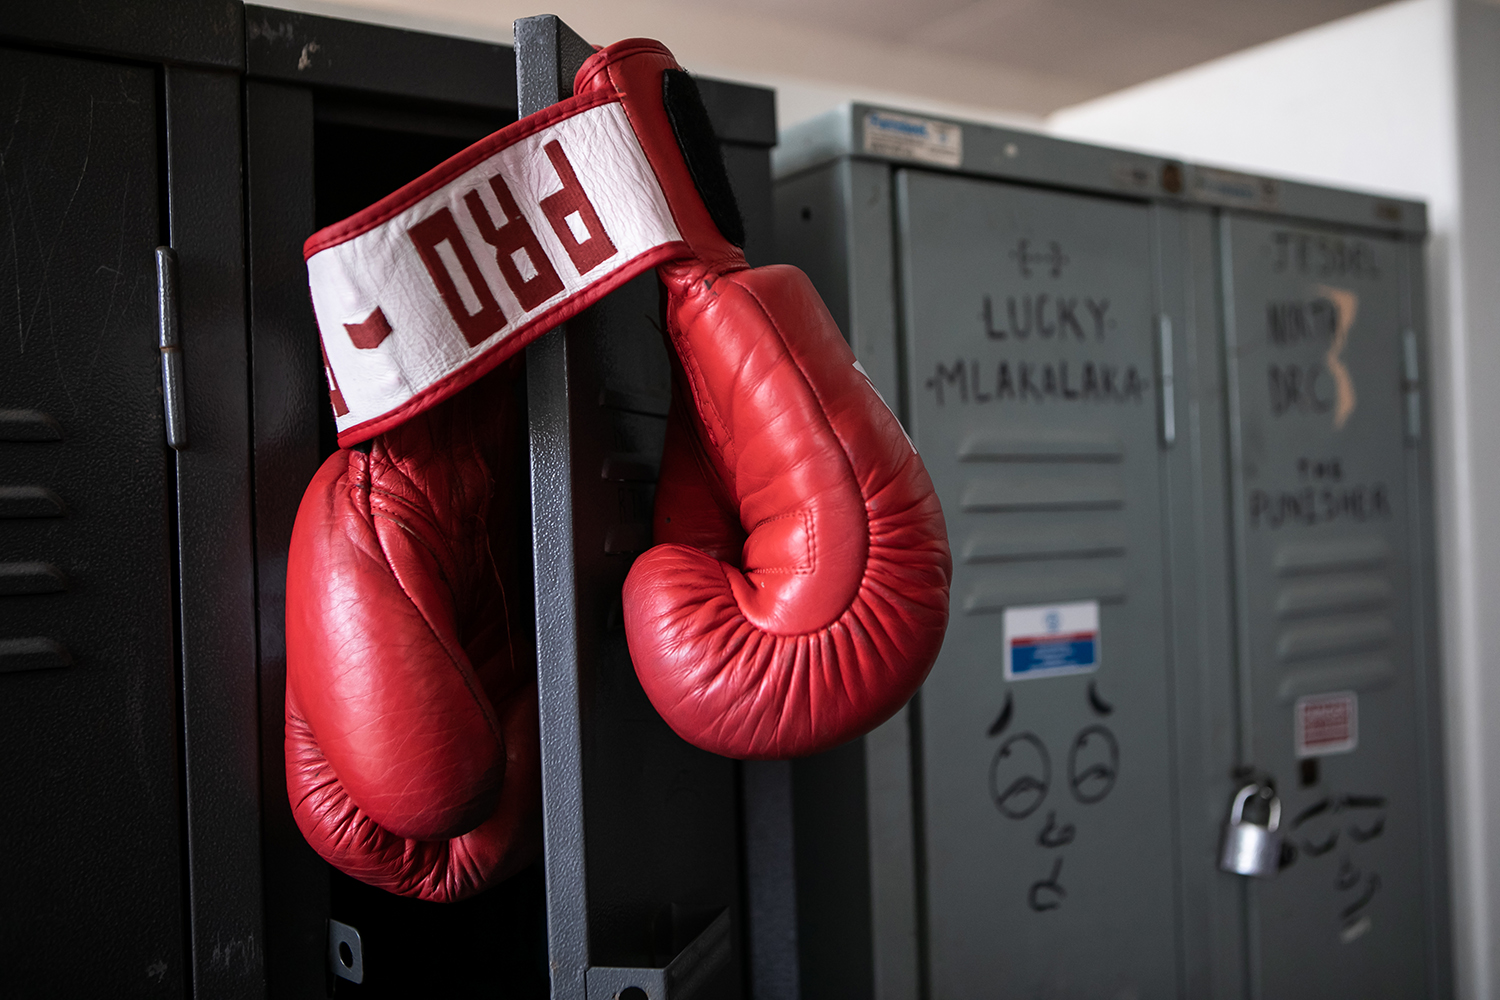 Project info: